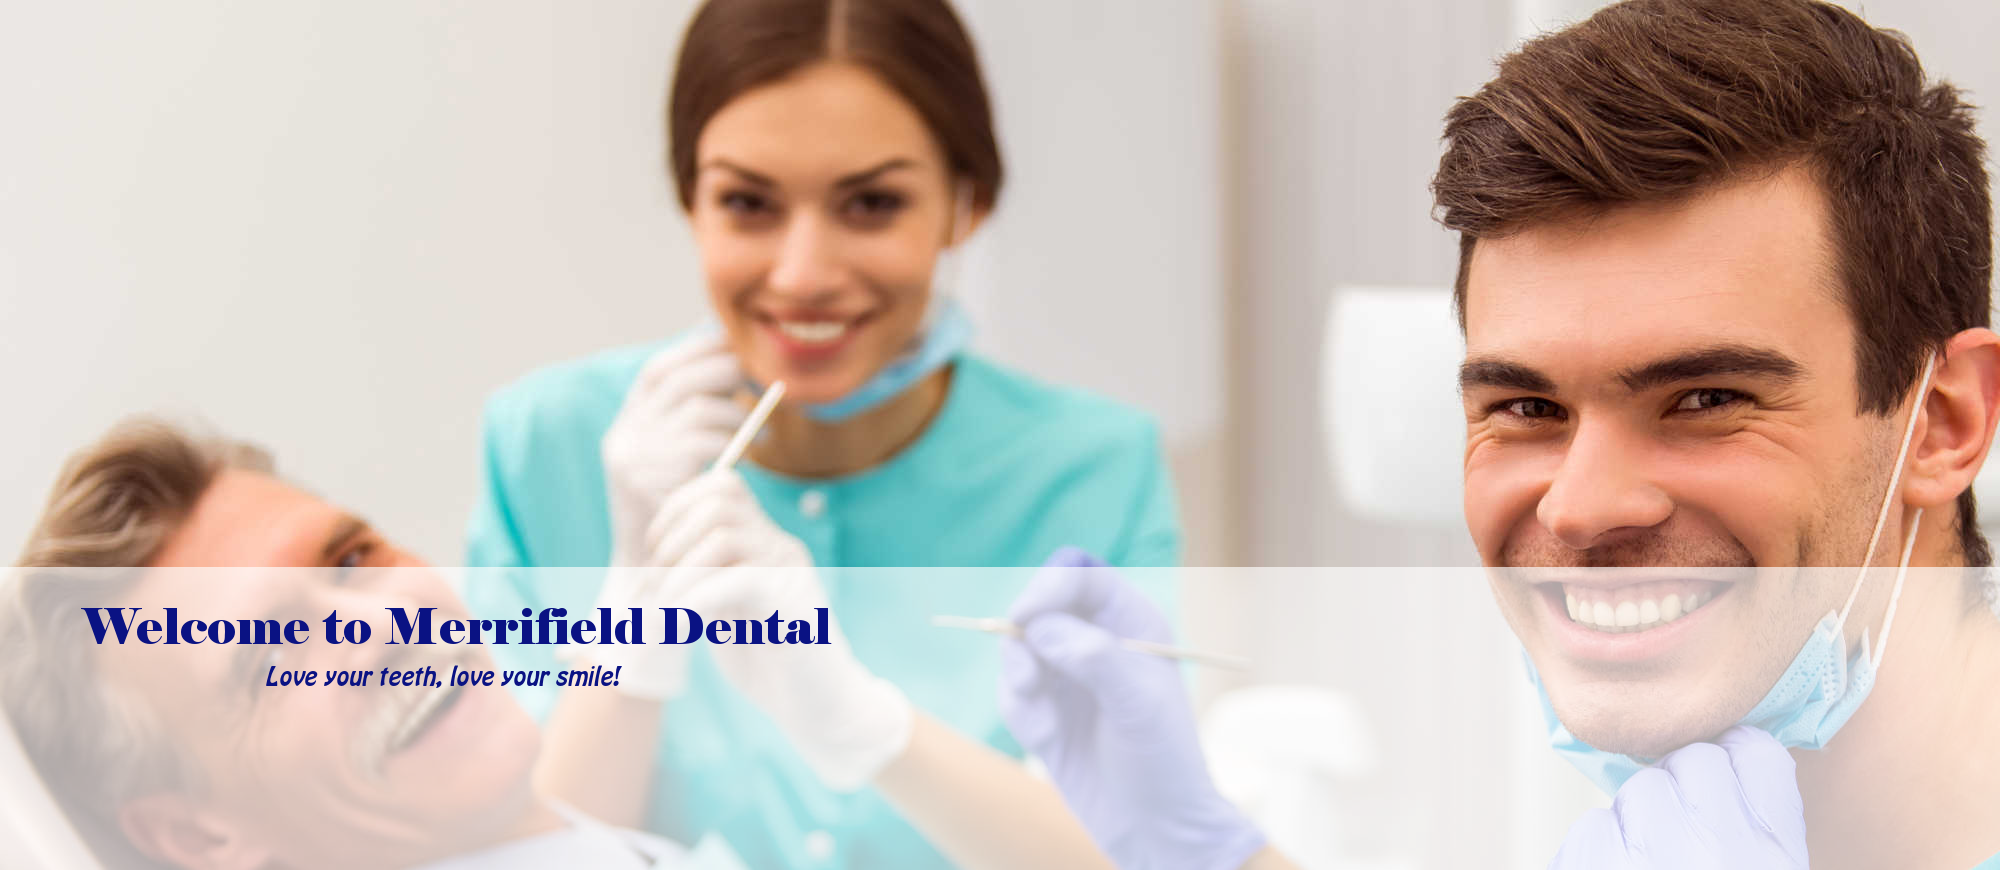 MERRIFIELD DENTAL